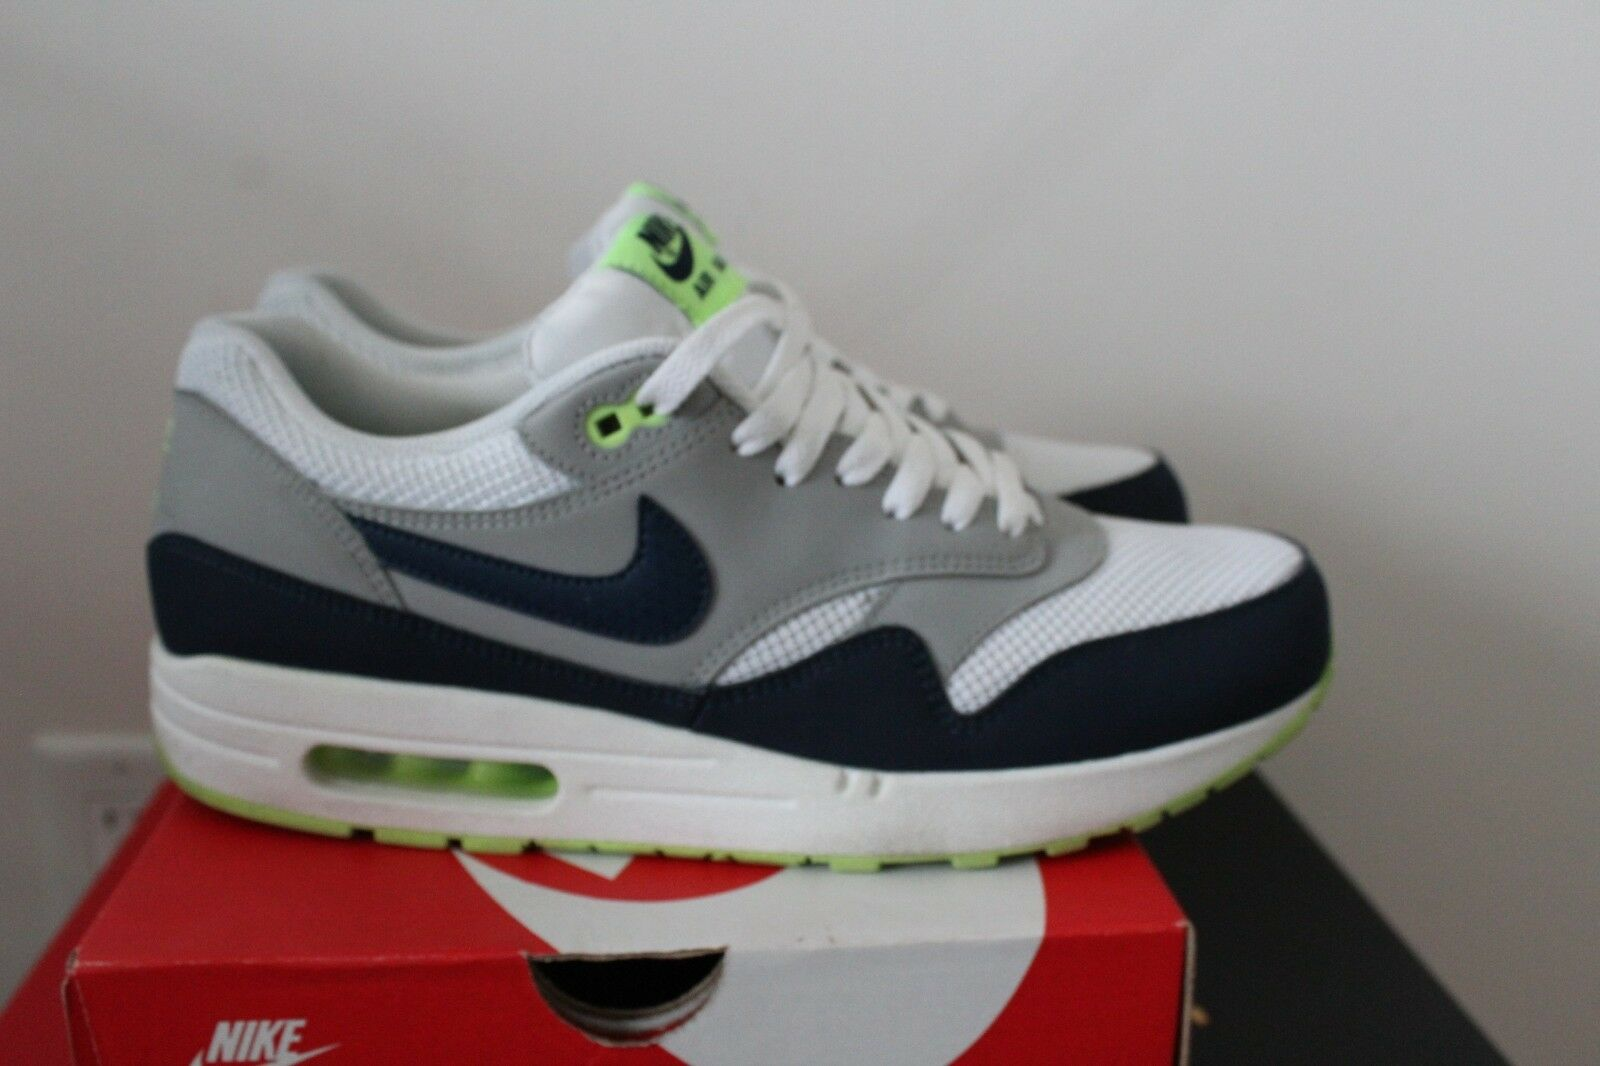 Nike Air Max 1 - Size 11 - Seattle Seahawks - 100% Original w Box